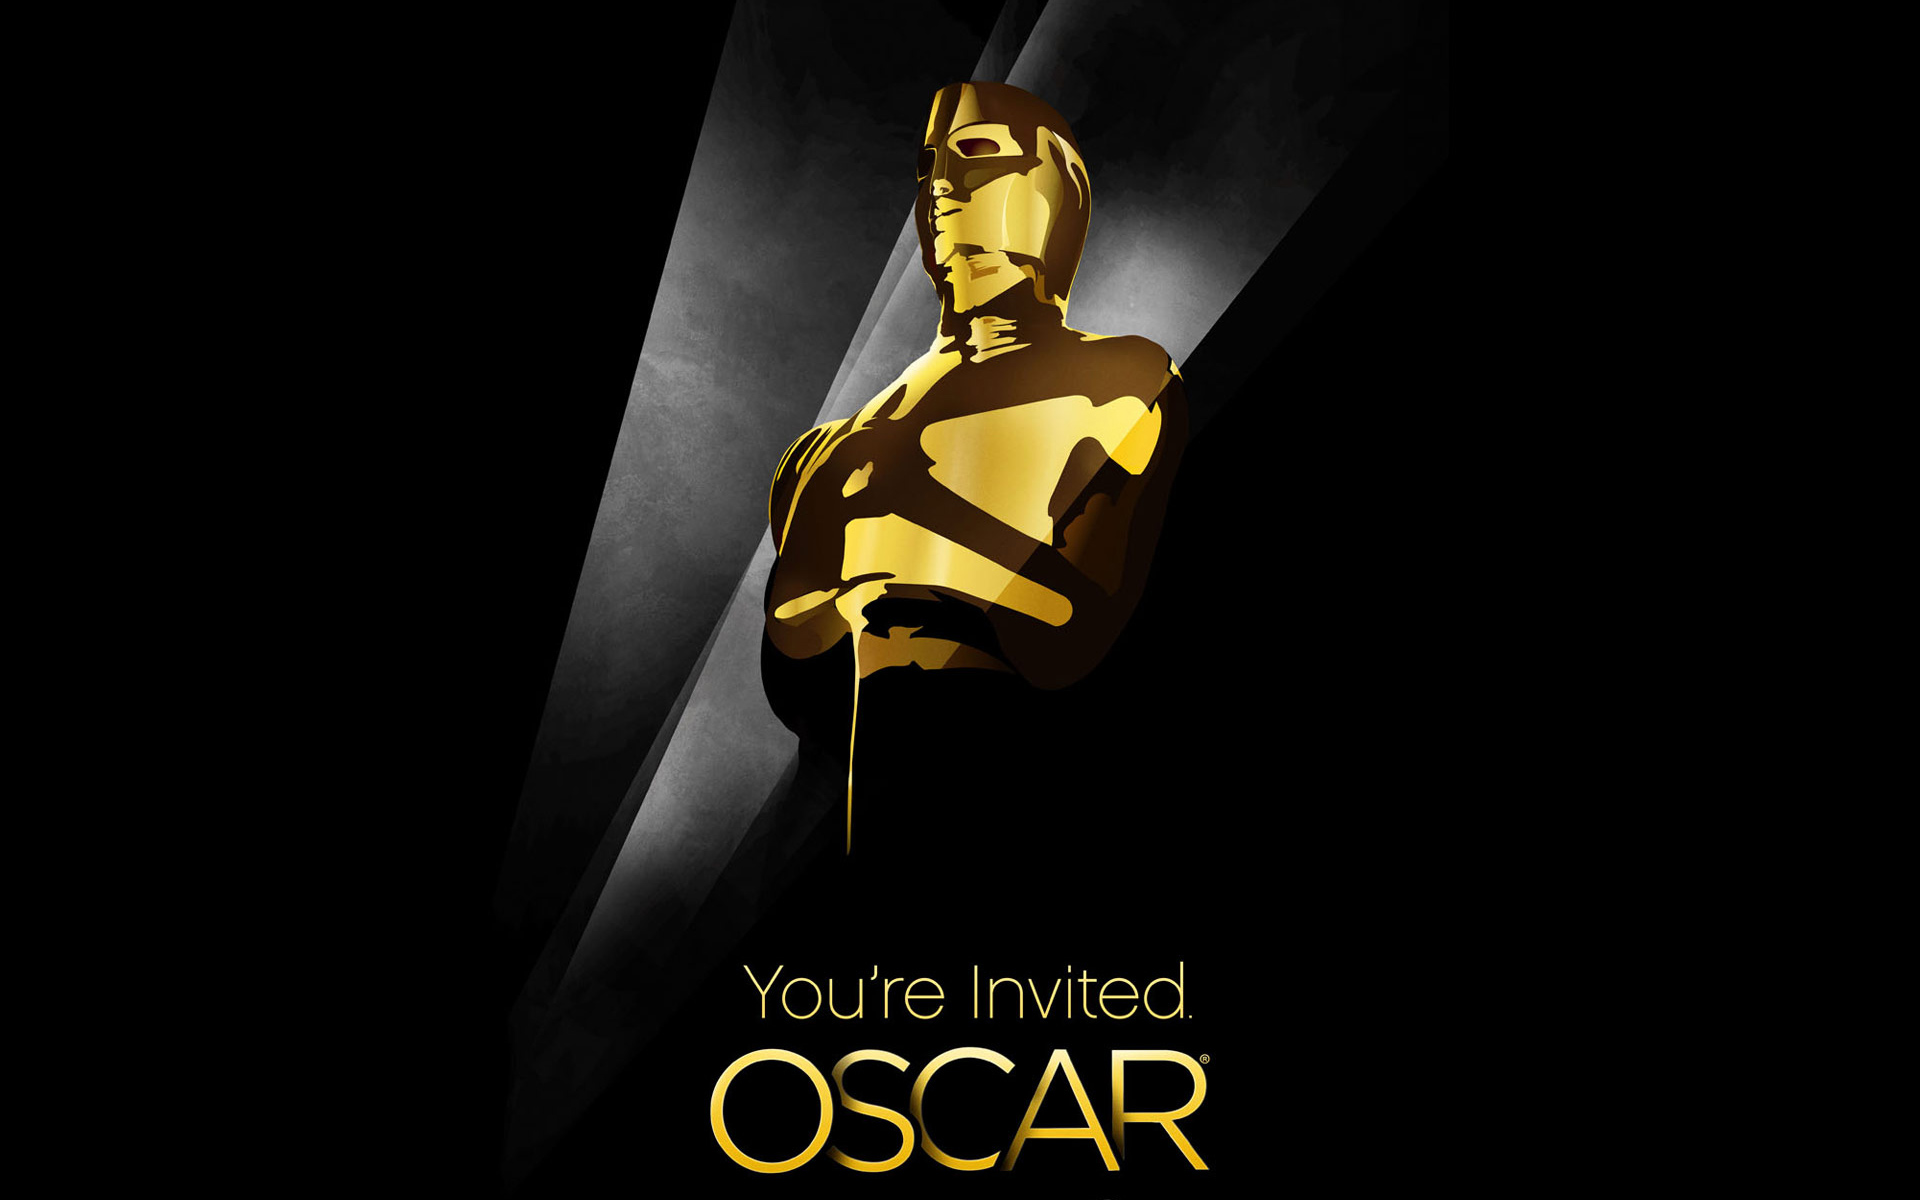 OSCAR Invitation738147851 - OSCAR Invitation - OSCAR, Invitation, Flooring